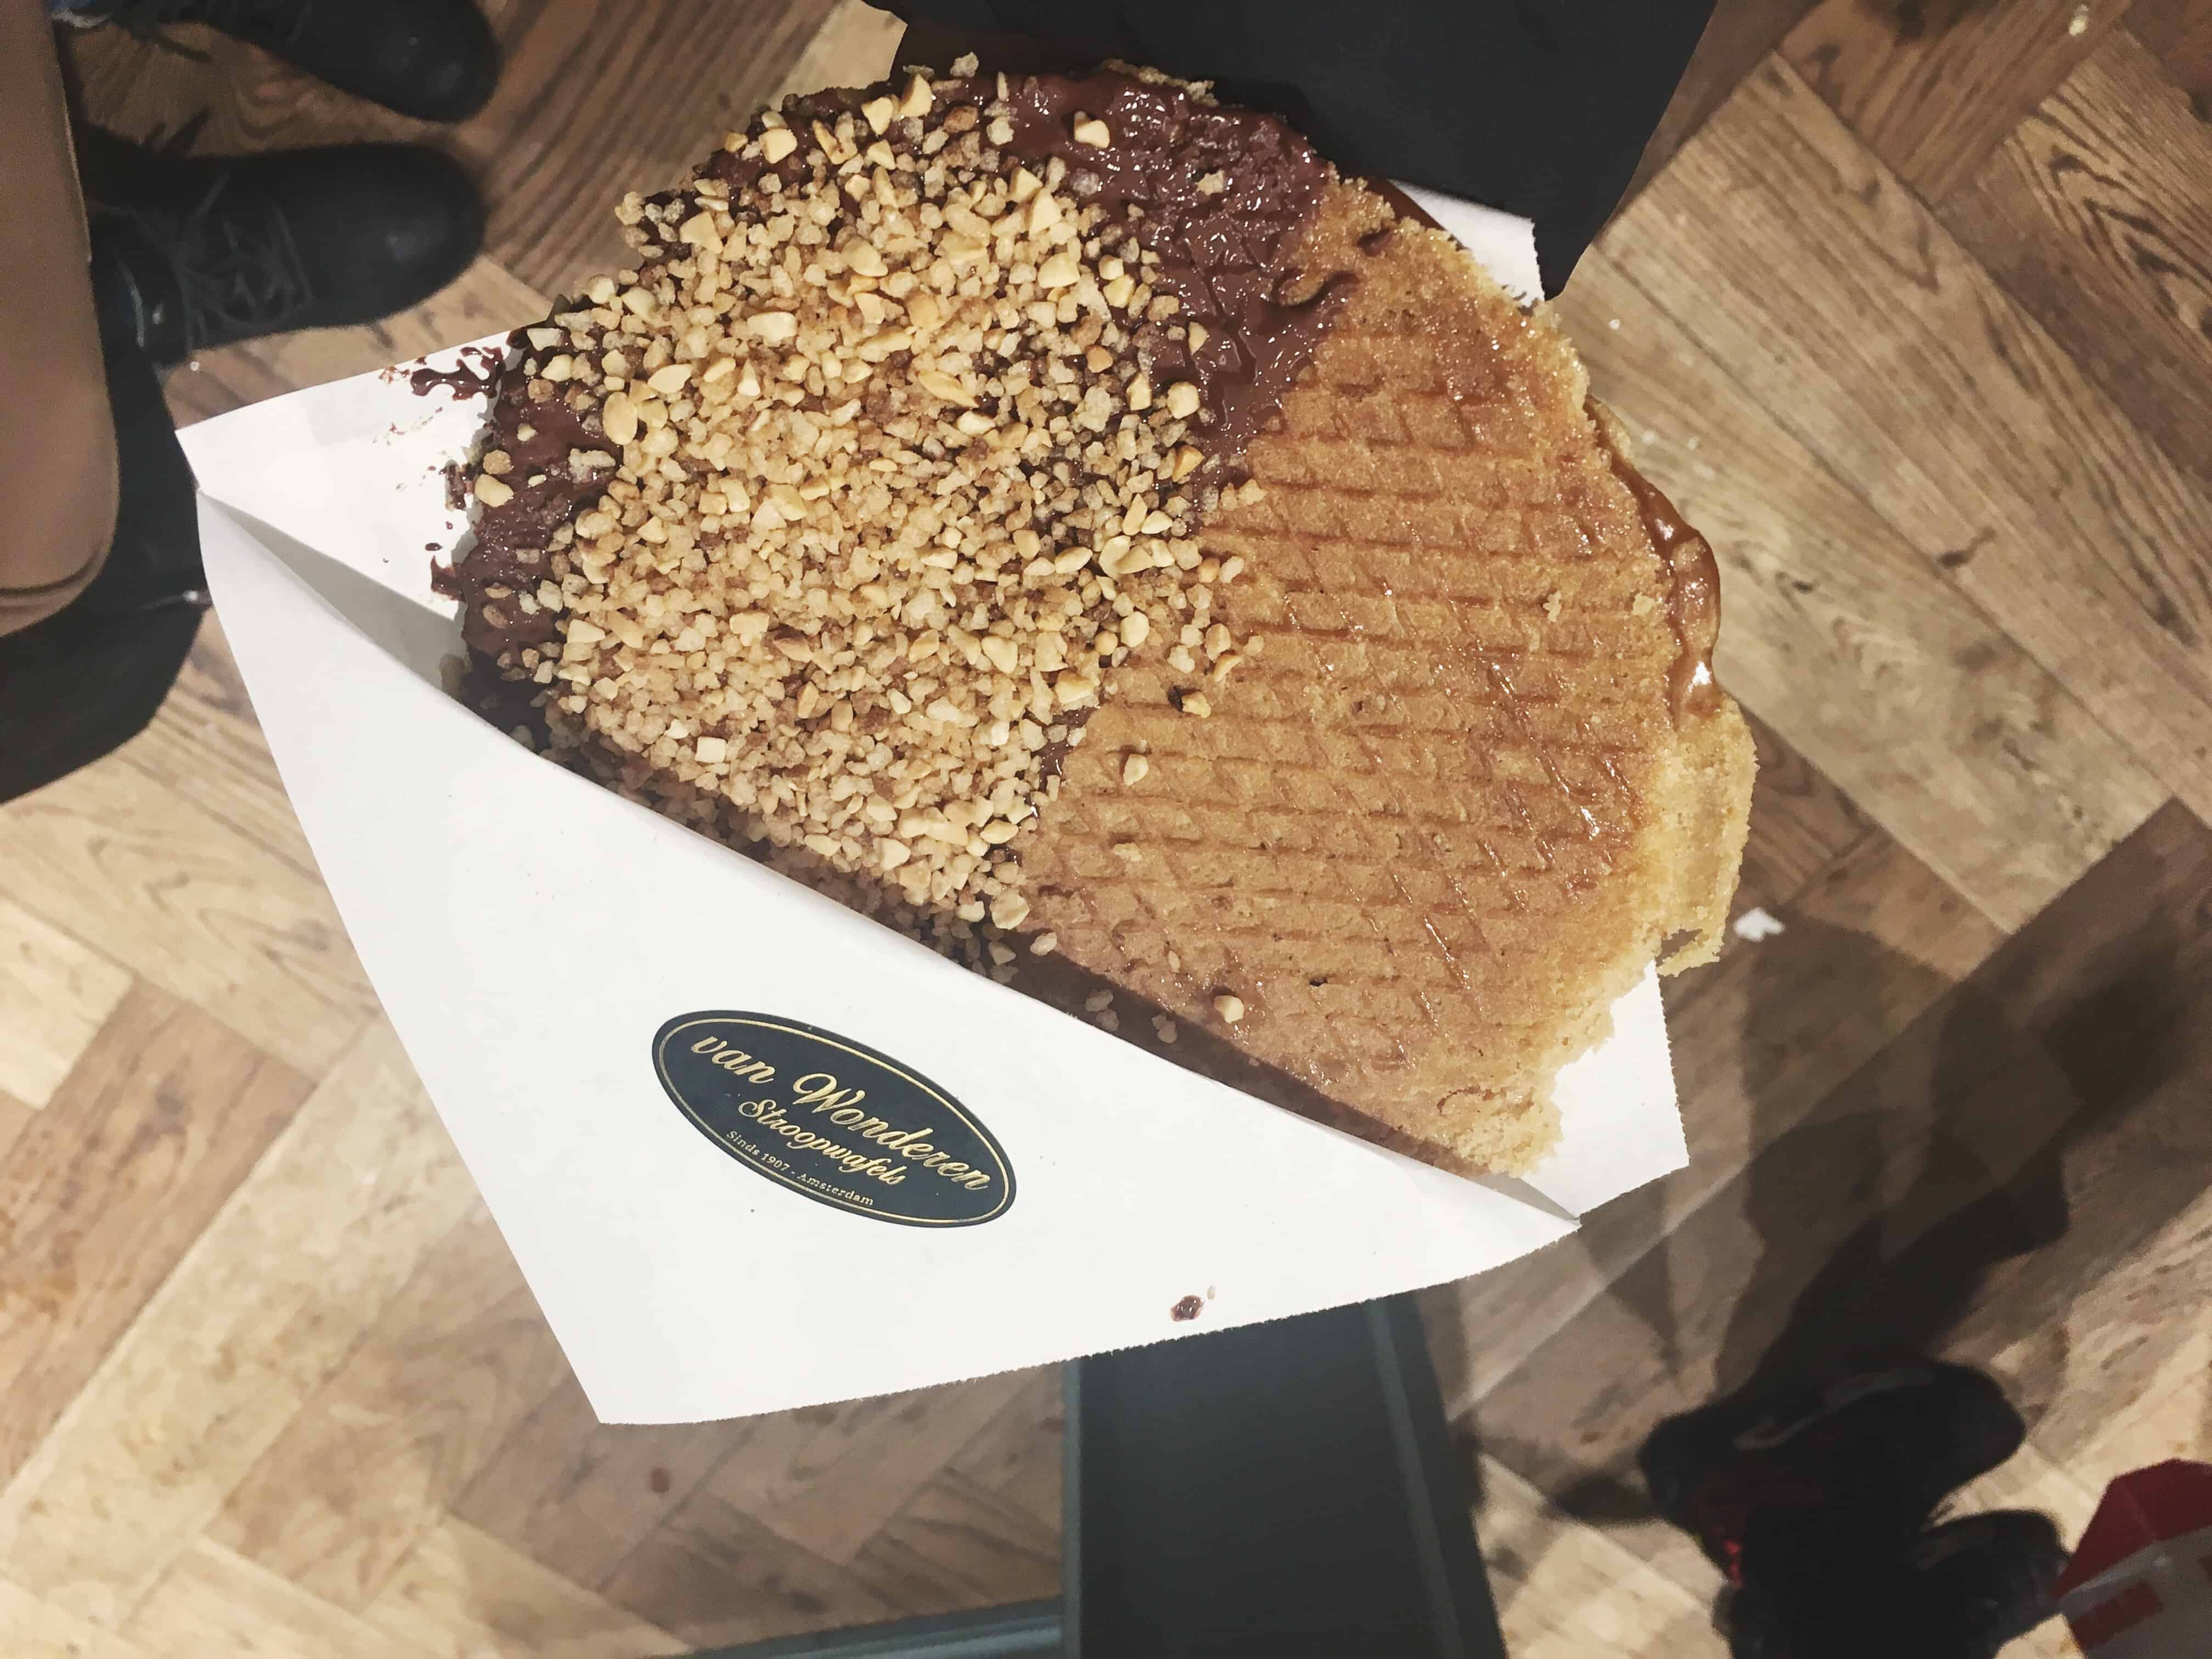 Stroopwafel topped with chocolate and hazelnuts from van Wonderen Stroopwafels in Amsterdam